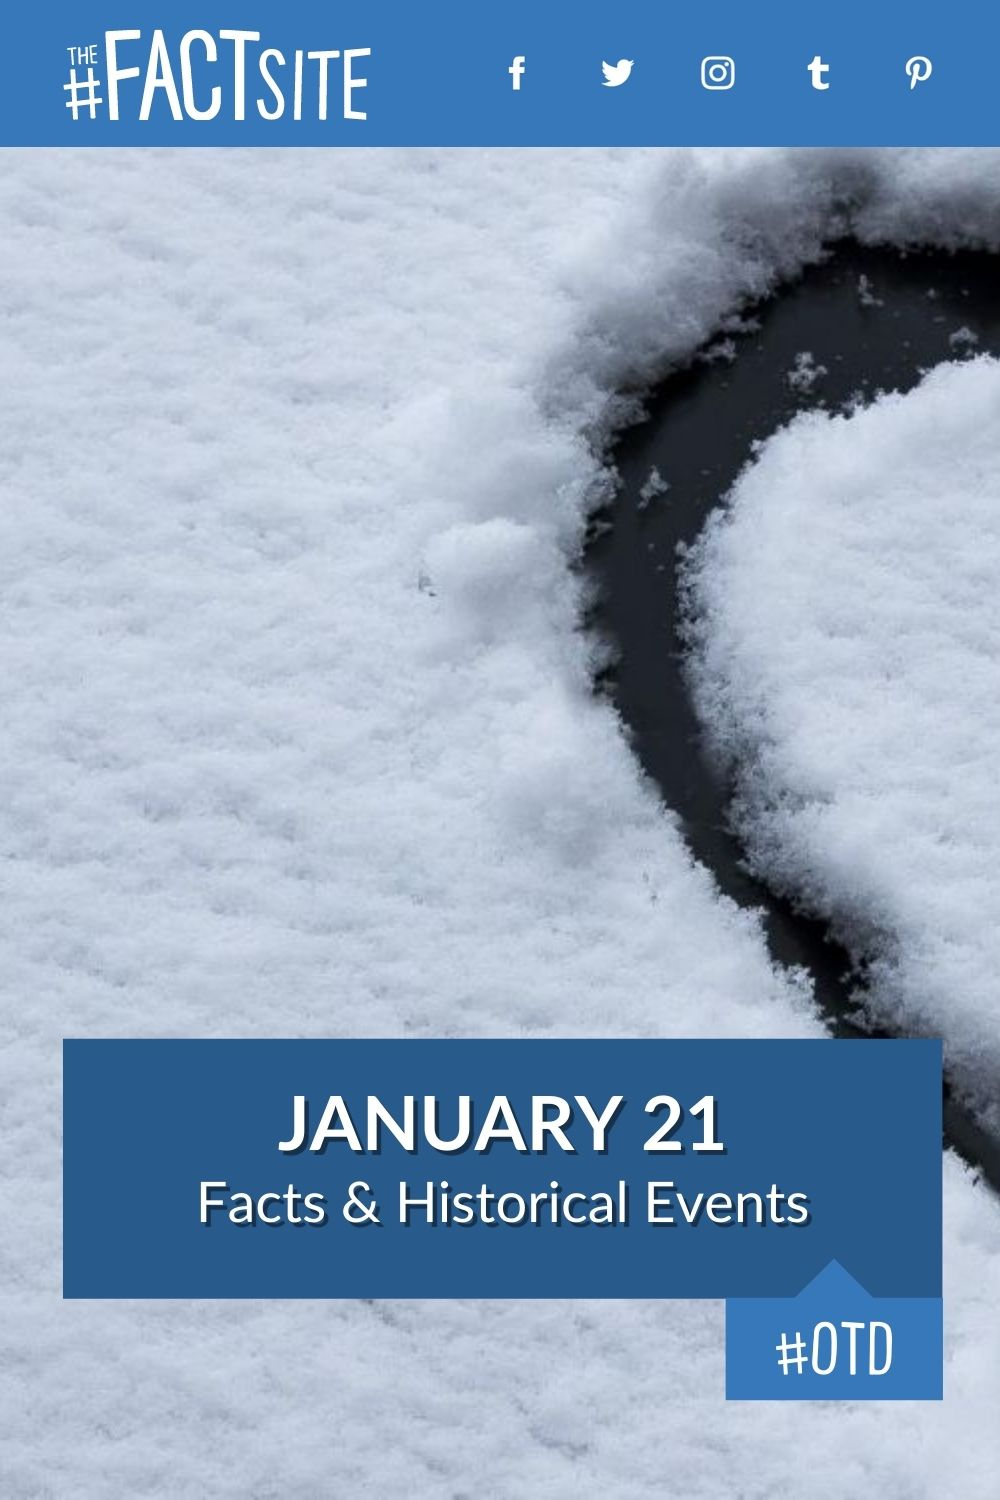 Facts & Historic Events That Happened on January 21